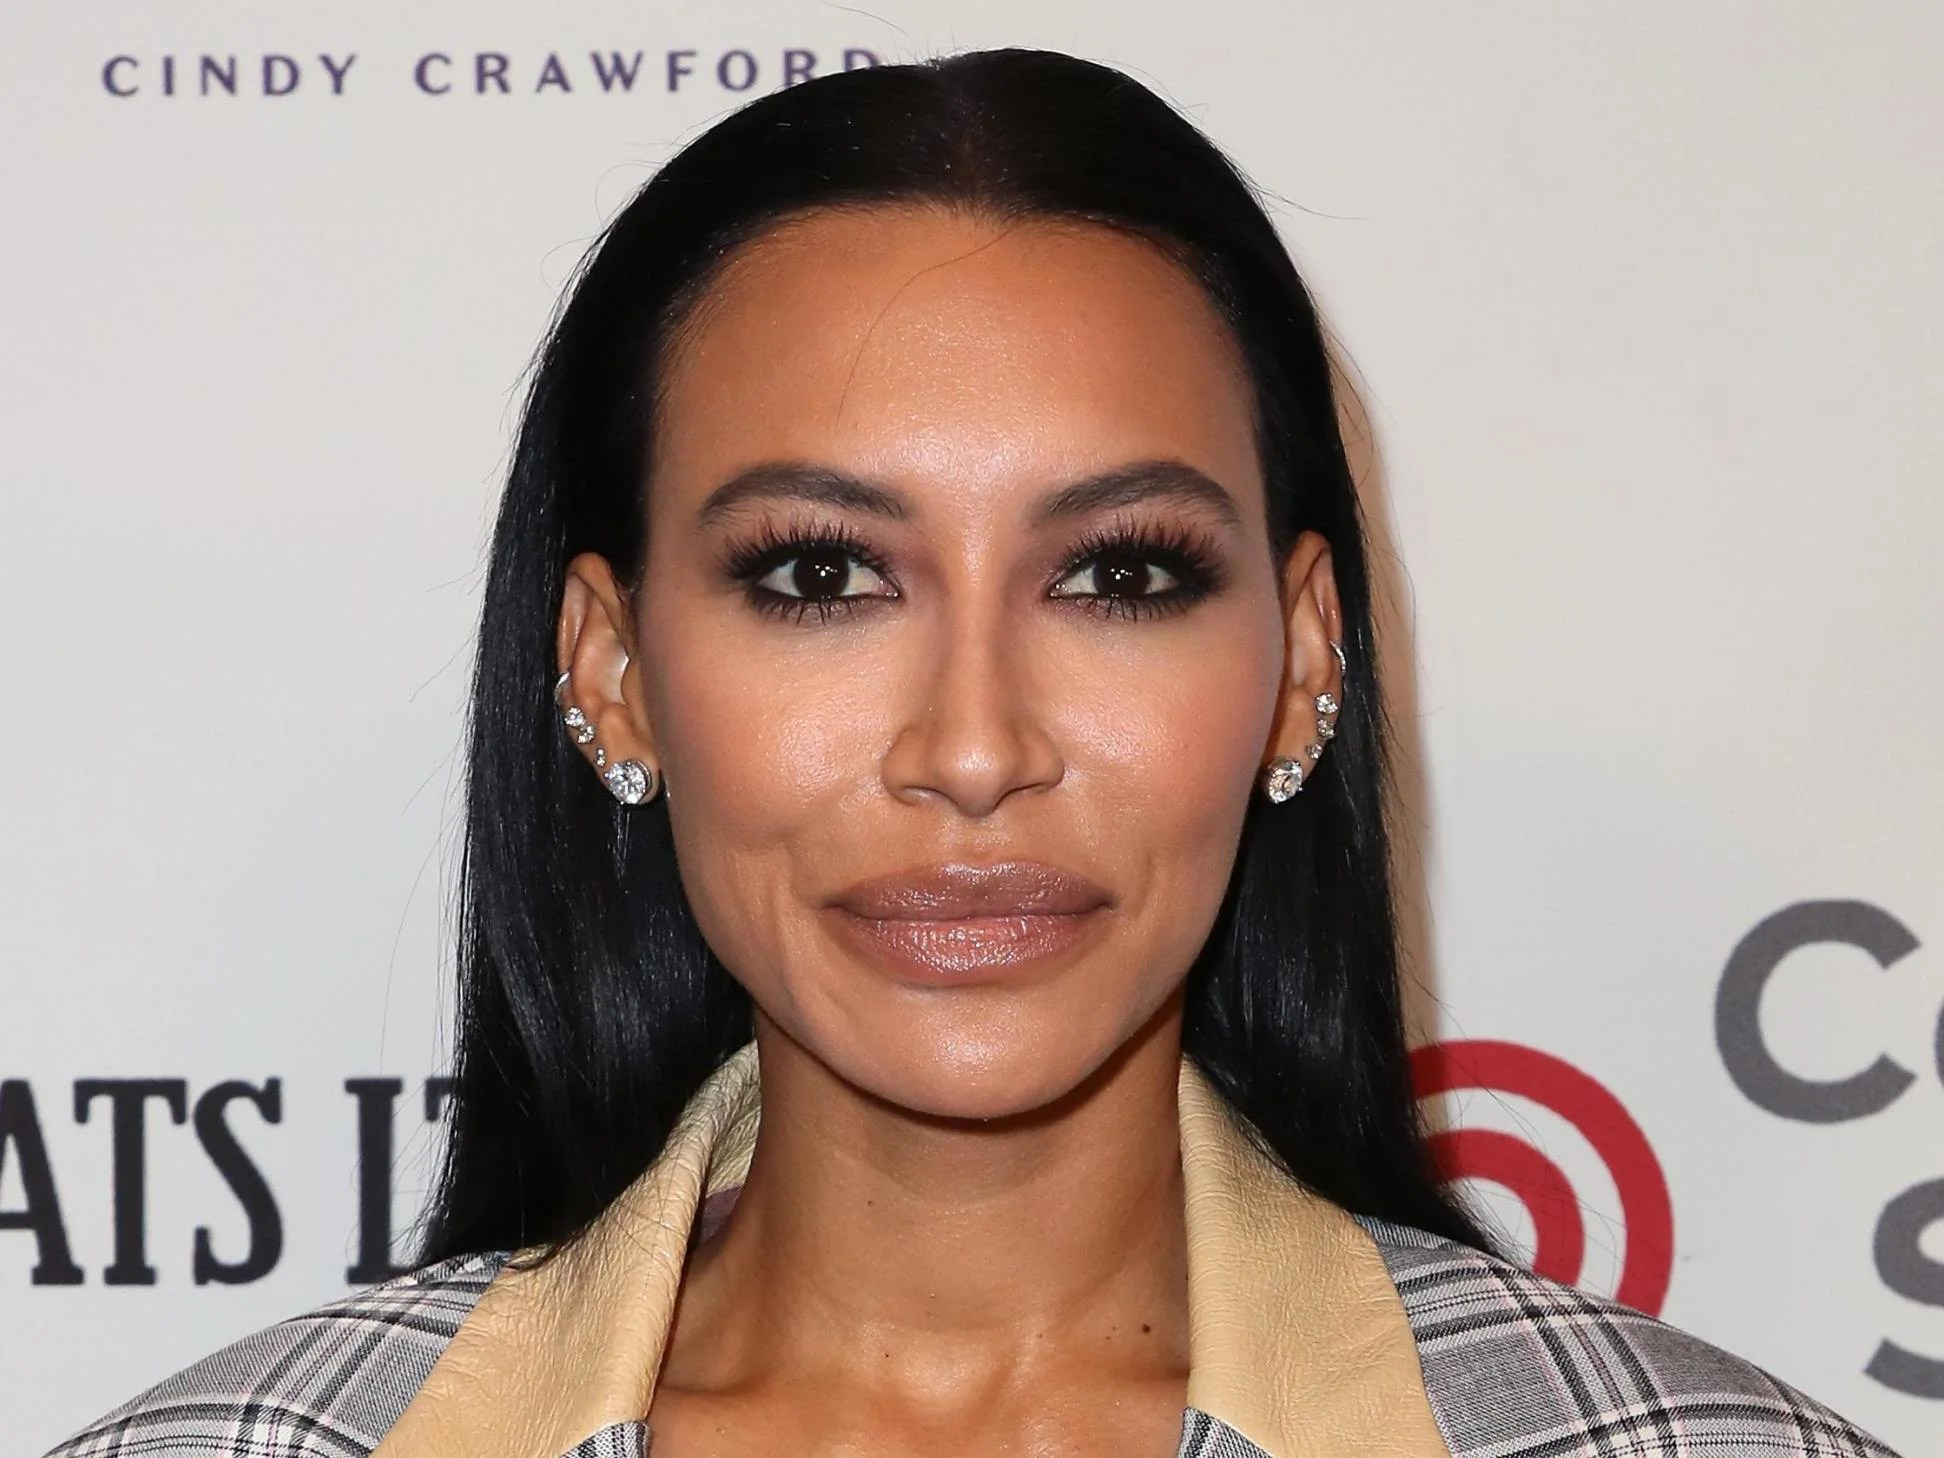 Glee actor Naya Rivera feared dead after four-year-old son found alone on boat, authorities say 6